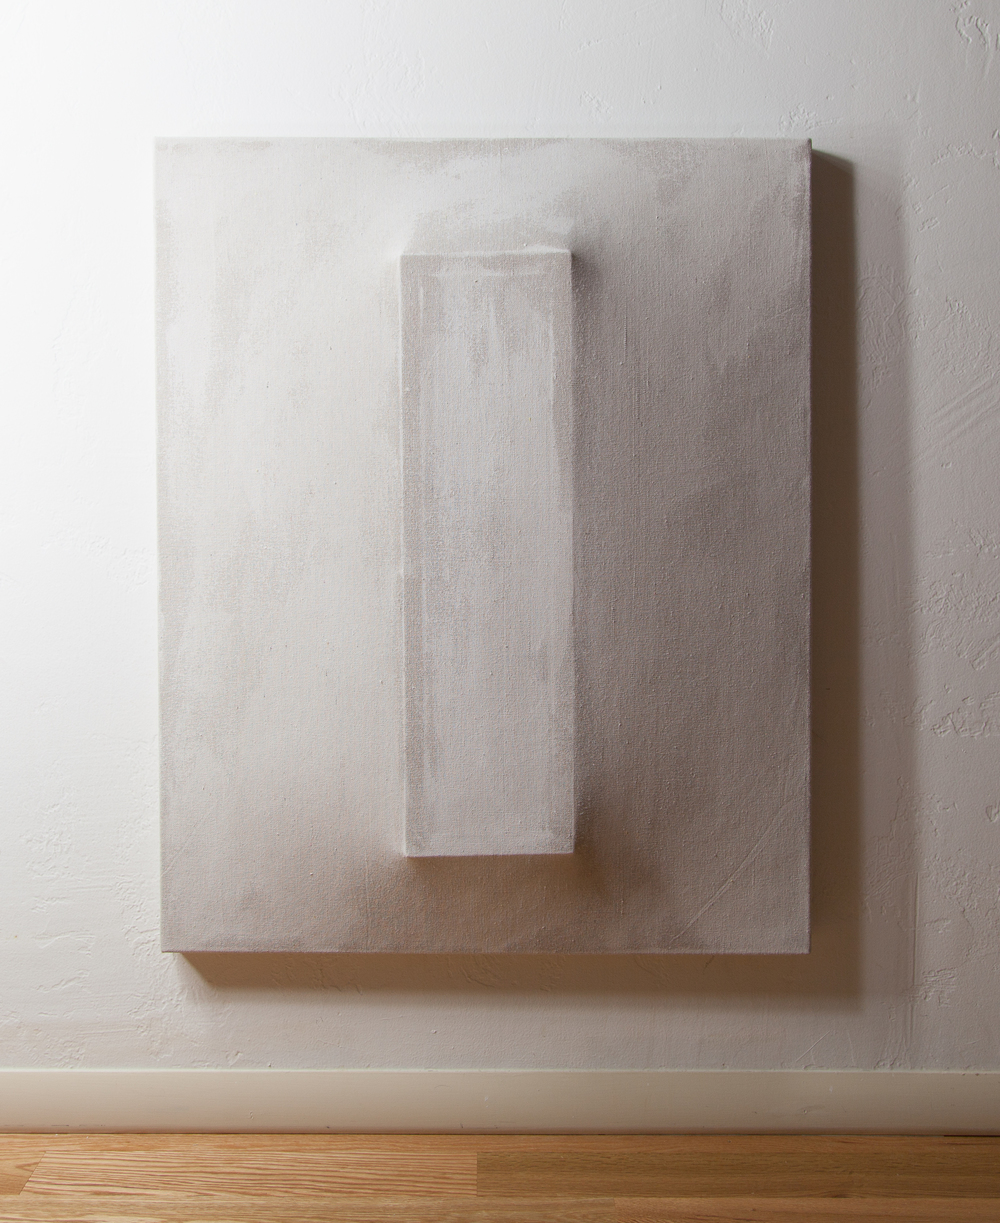 There's a Block in the Void (1242), gesso on shaped canvas,30 x 24, Installation, *